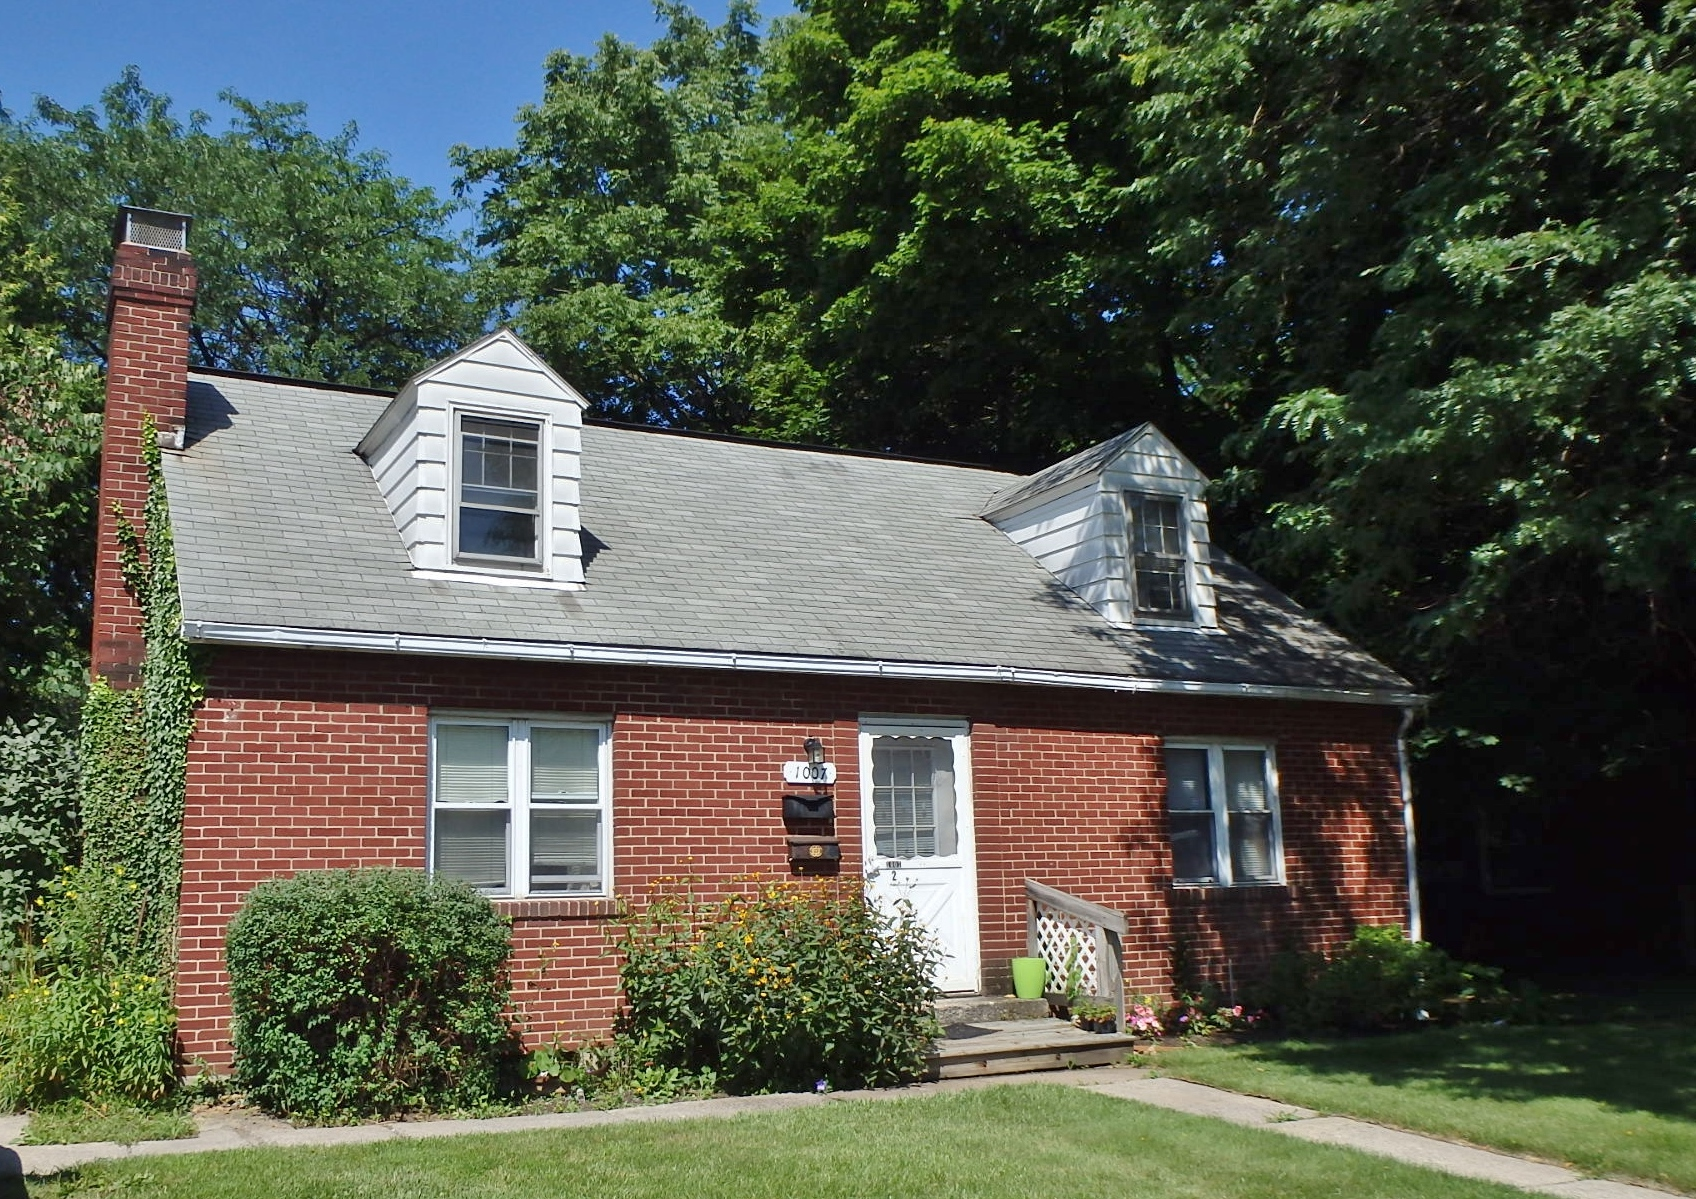 1007 N Atherton Street 1 Bedroom Student Apartment State College Pa Park Forest